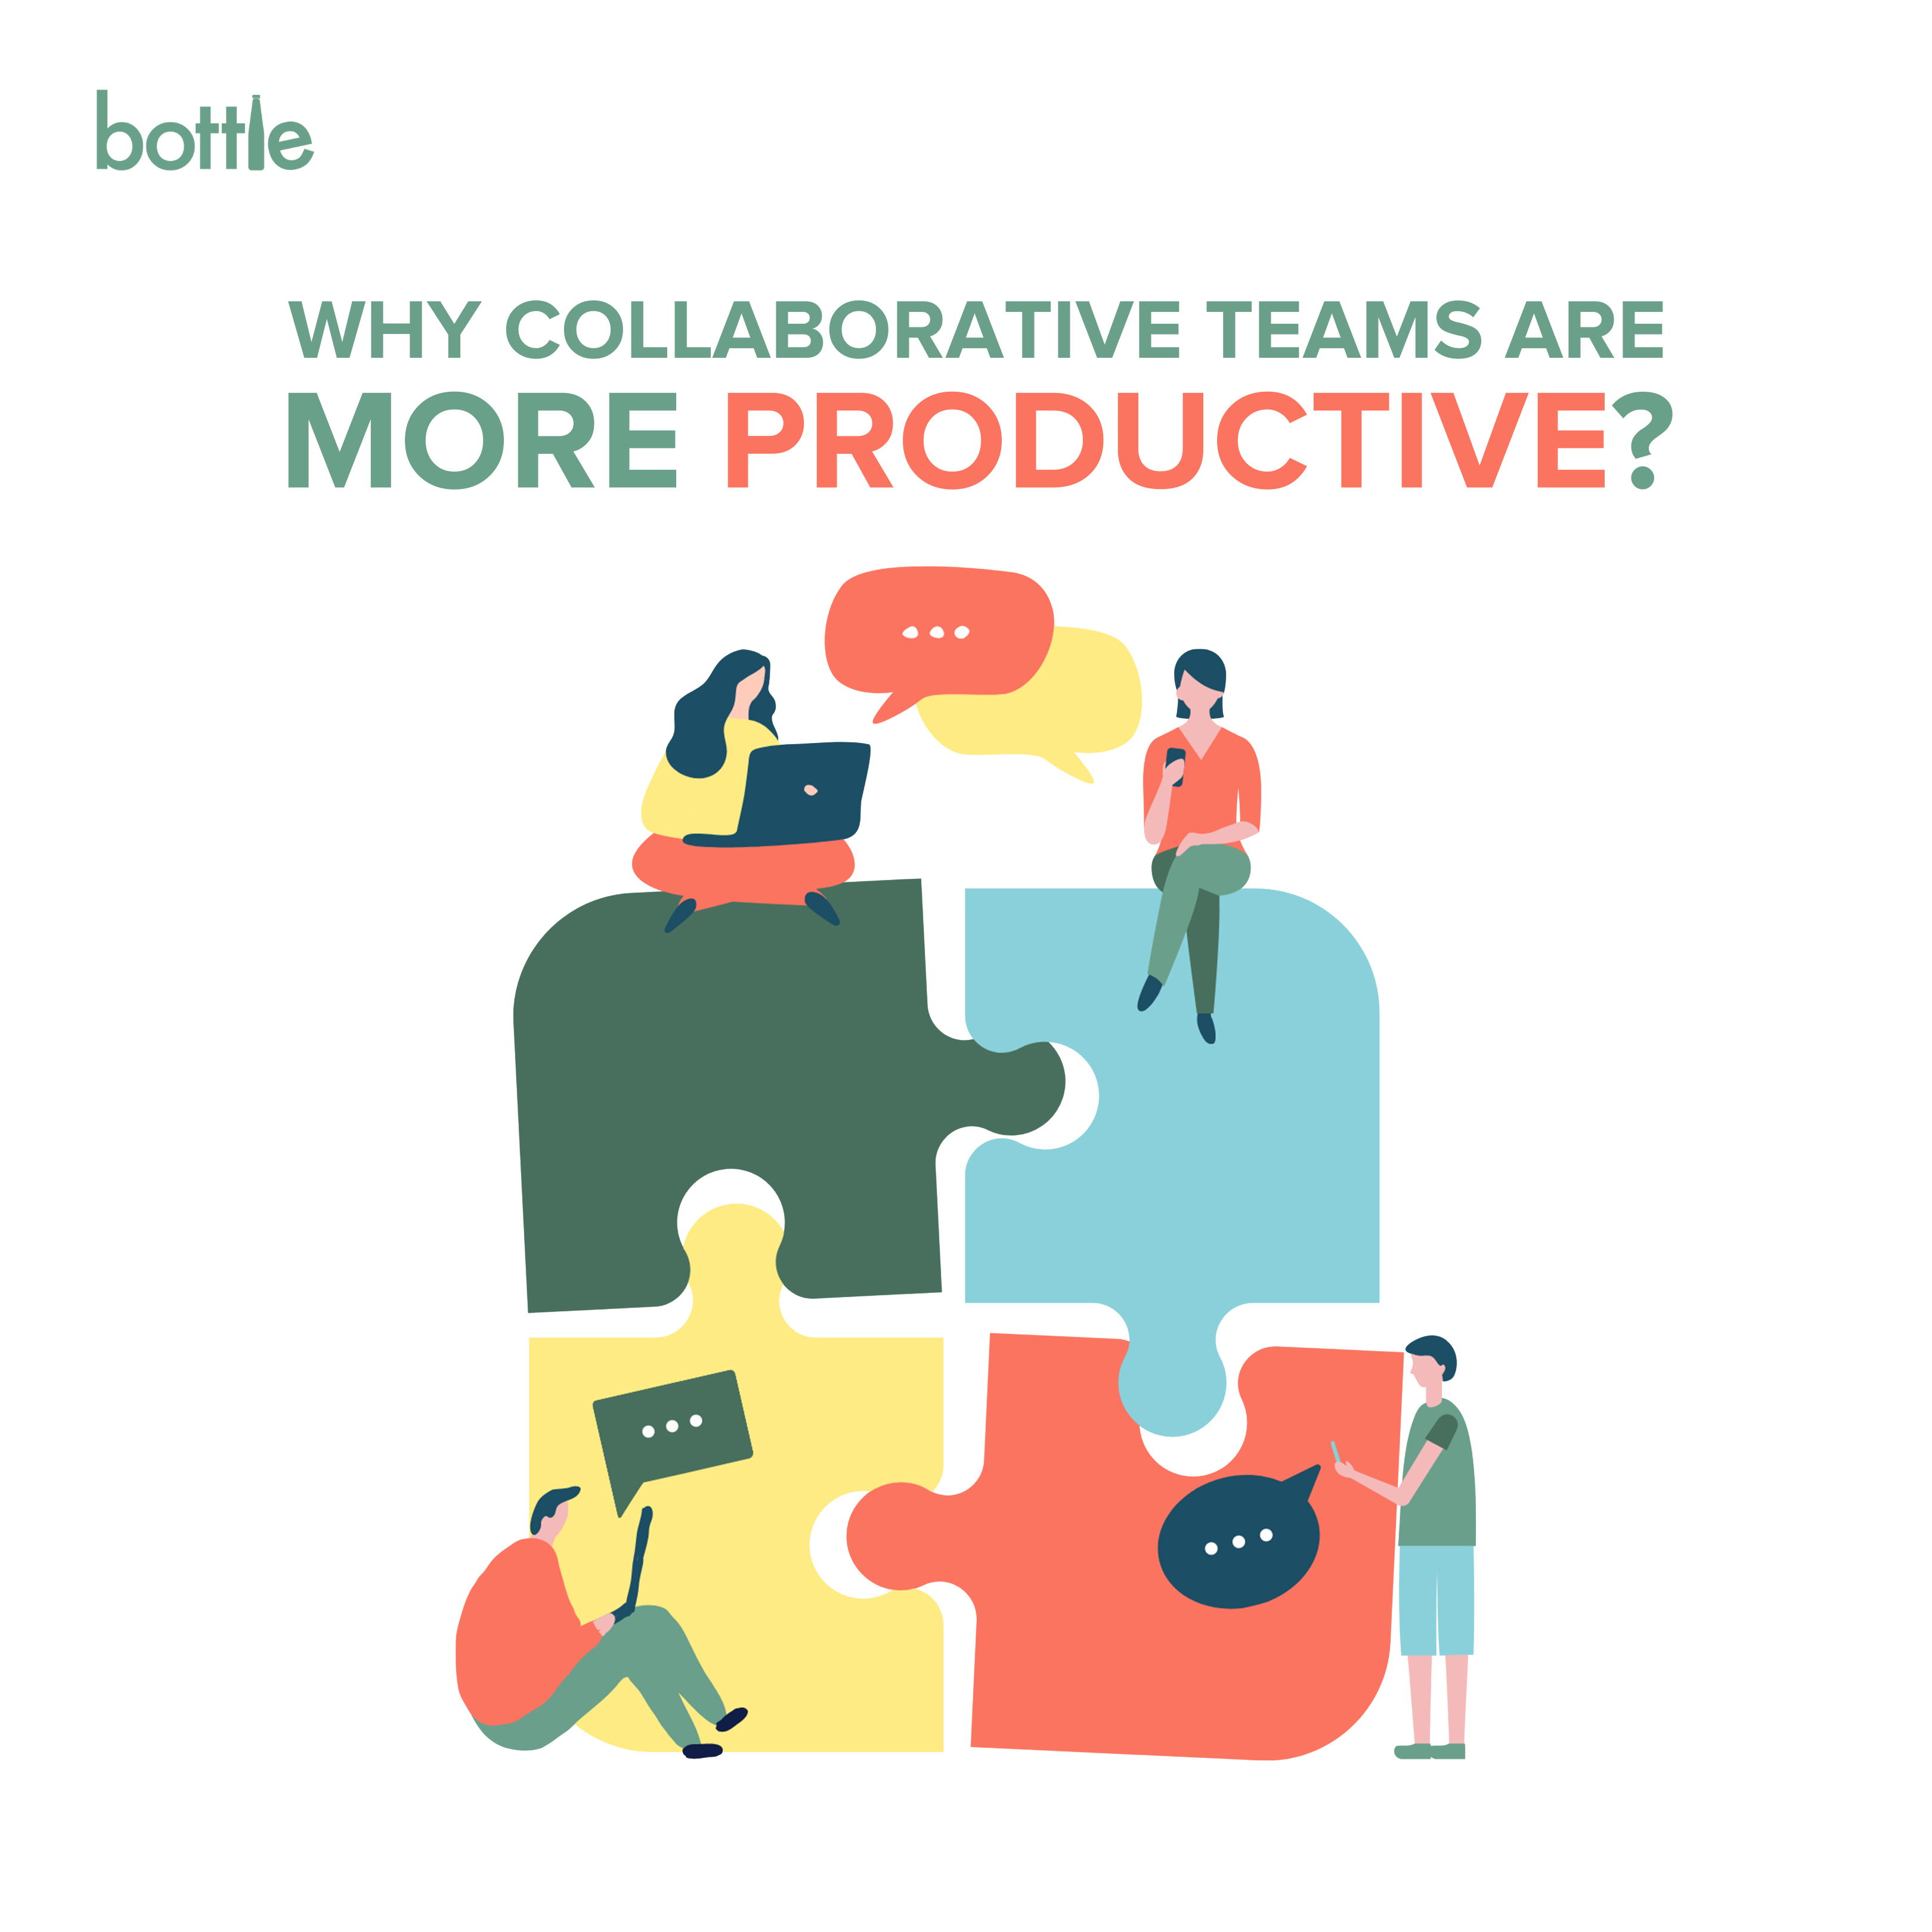 Why Collaborative Teams are More Productive?